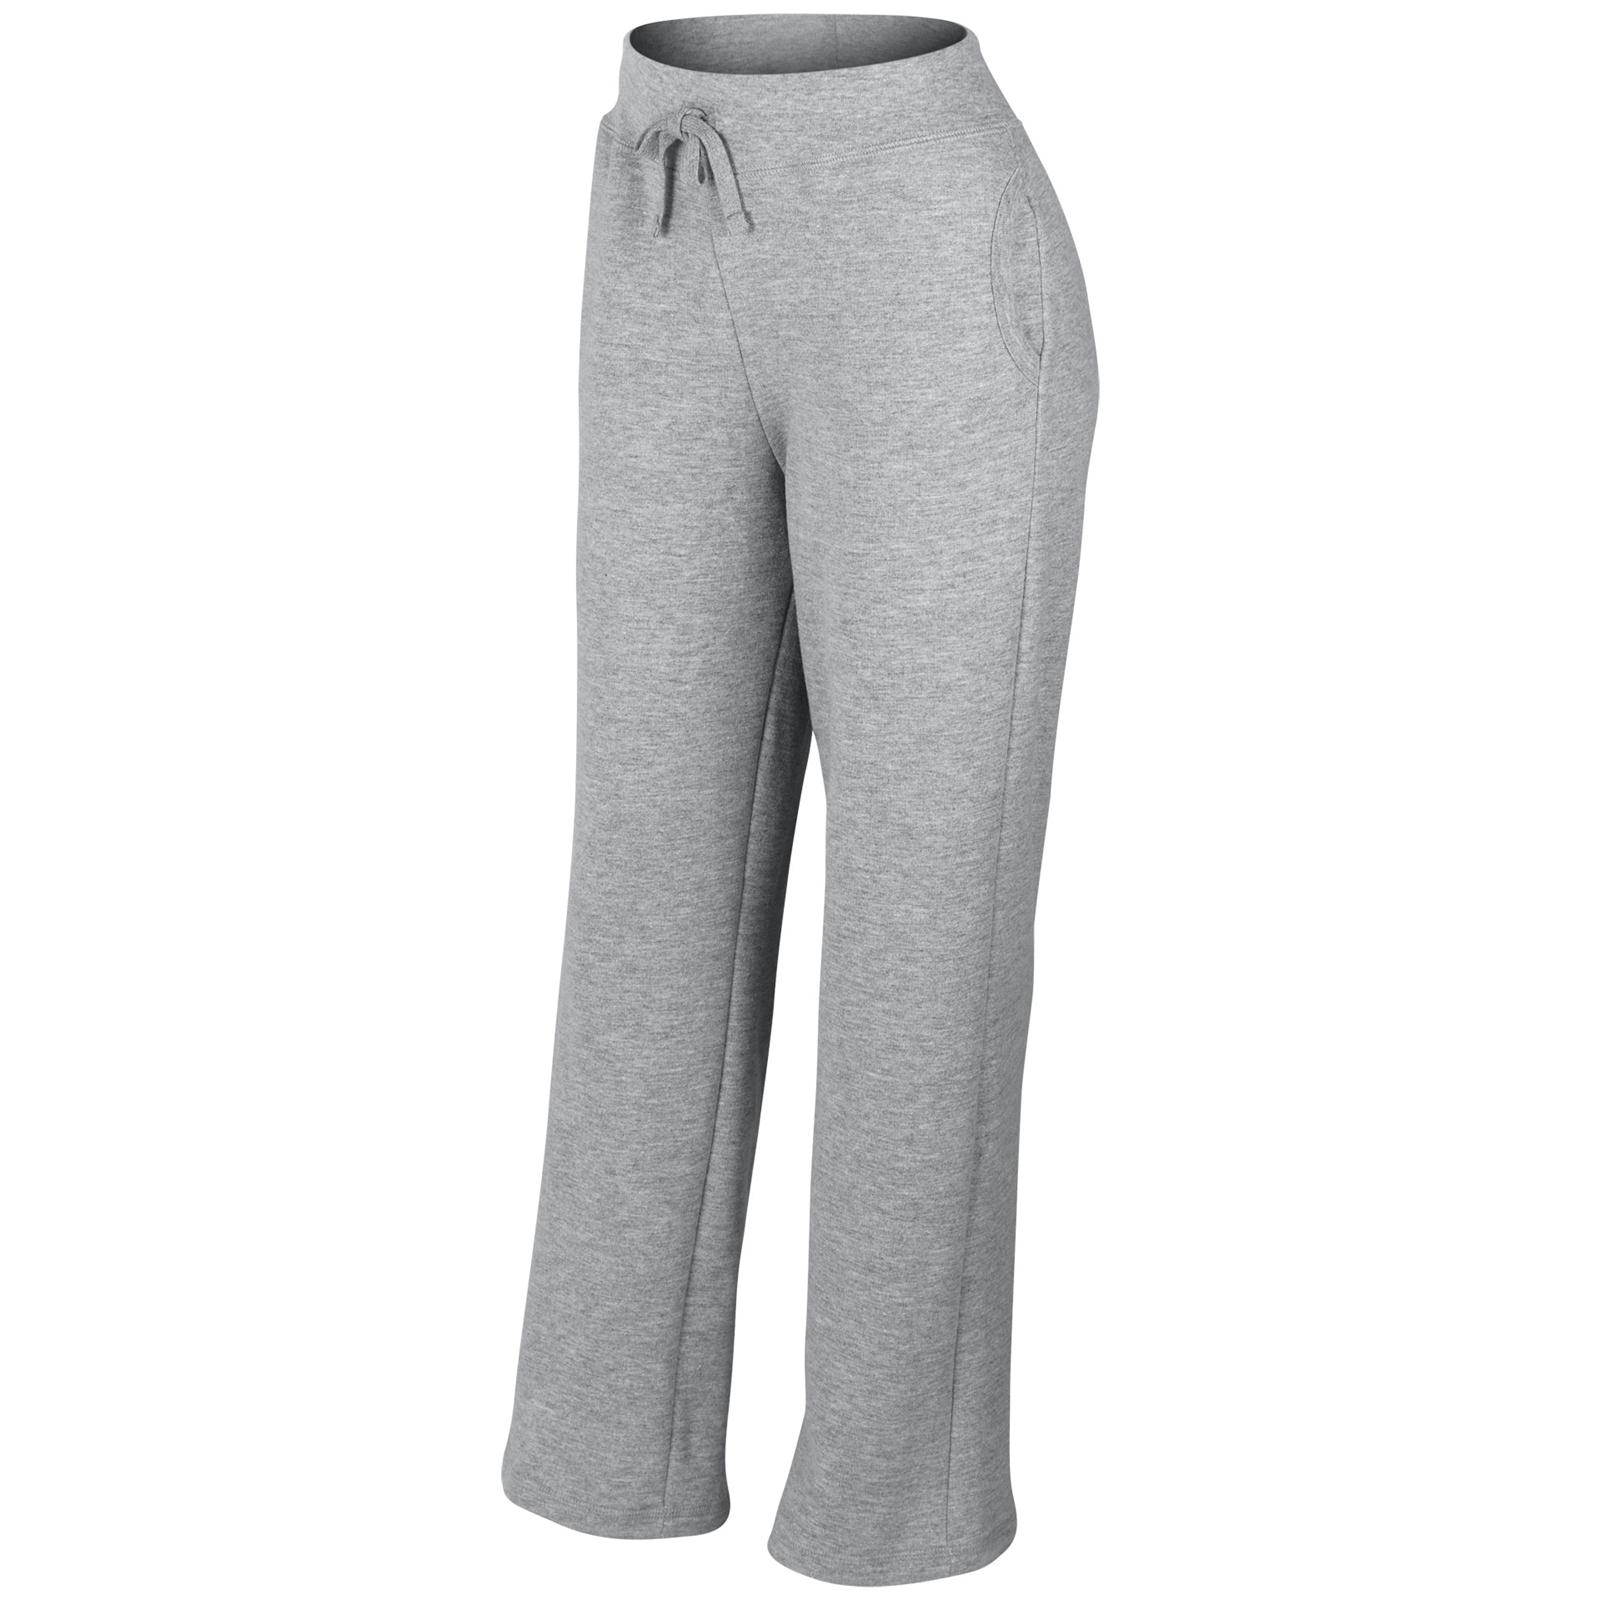 Find your perfect pair of sweatpants for women hamlergoodchain.ga returns in-store · Free shipping over $40 · Next day delivery · New arrivals every day.